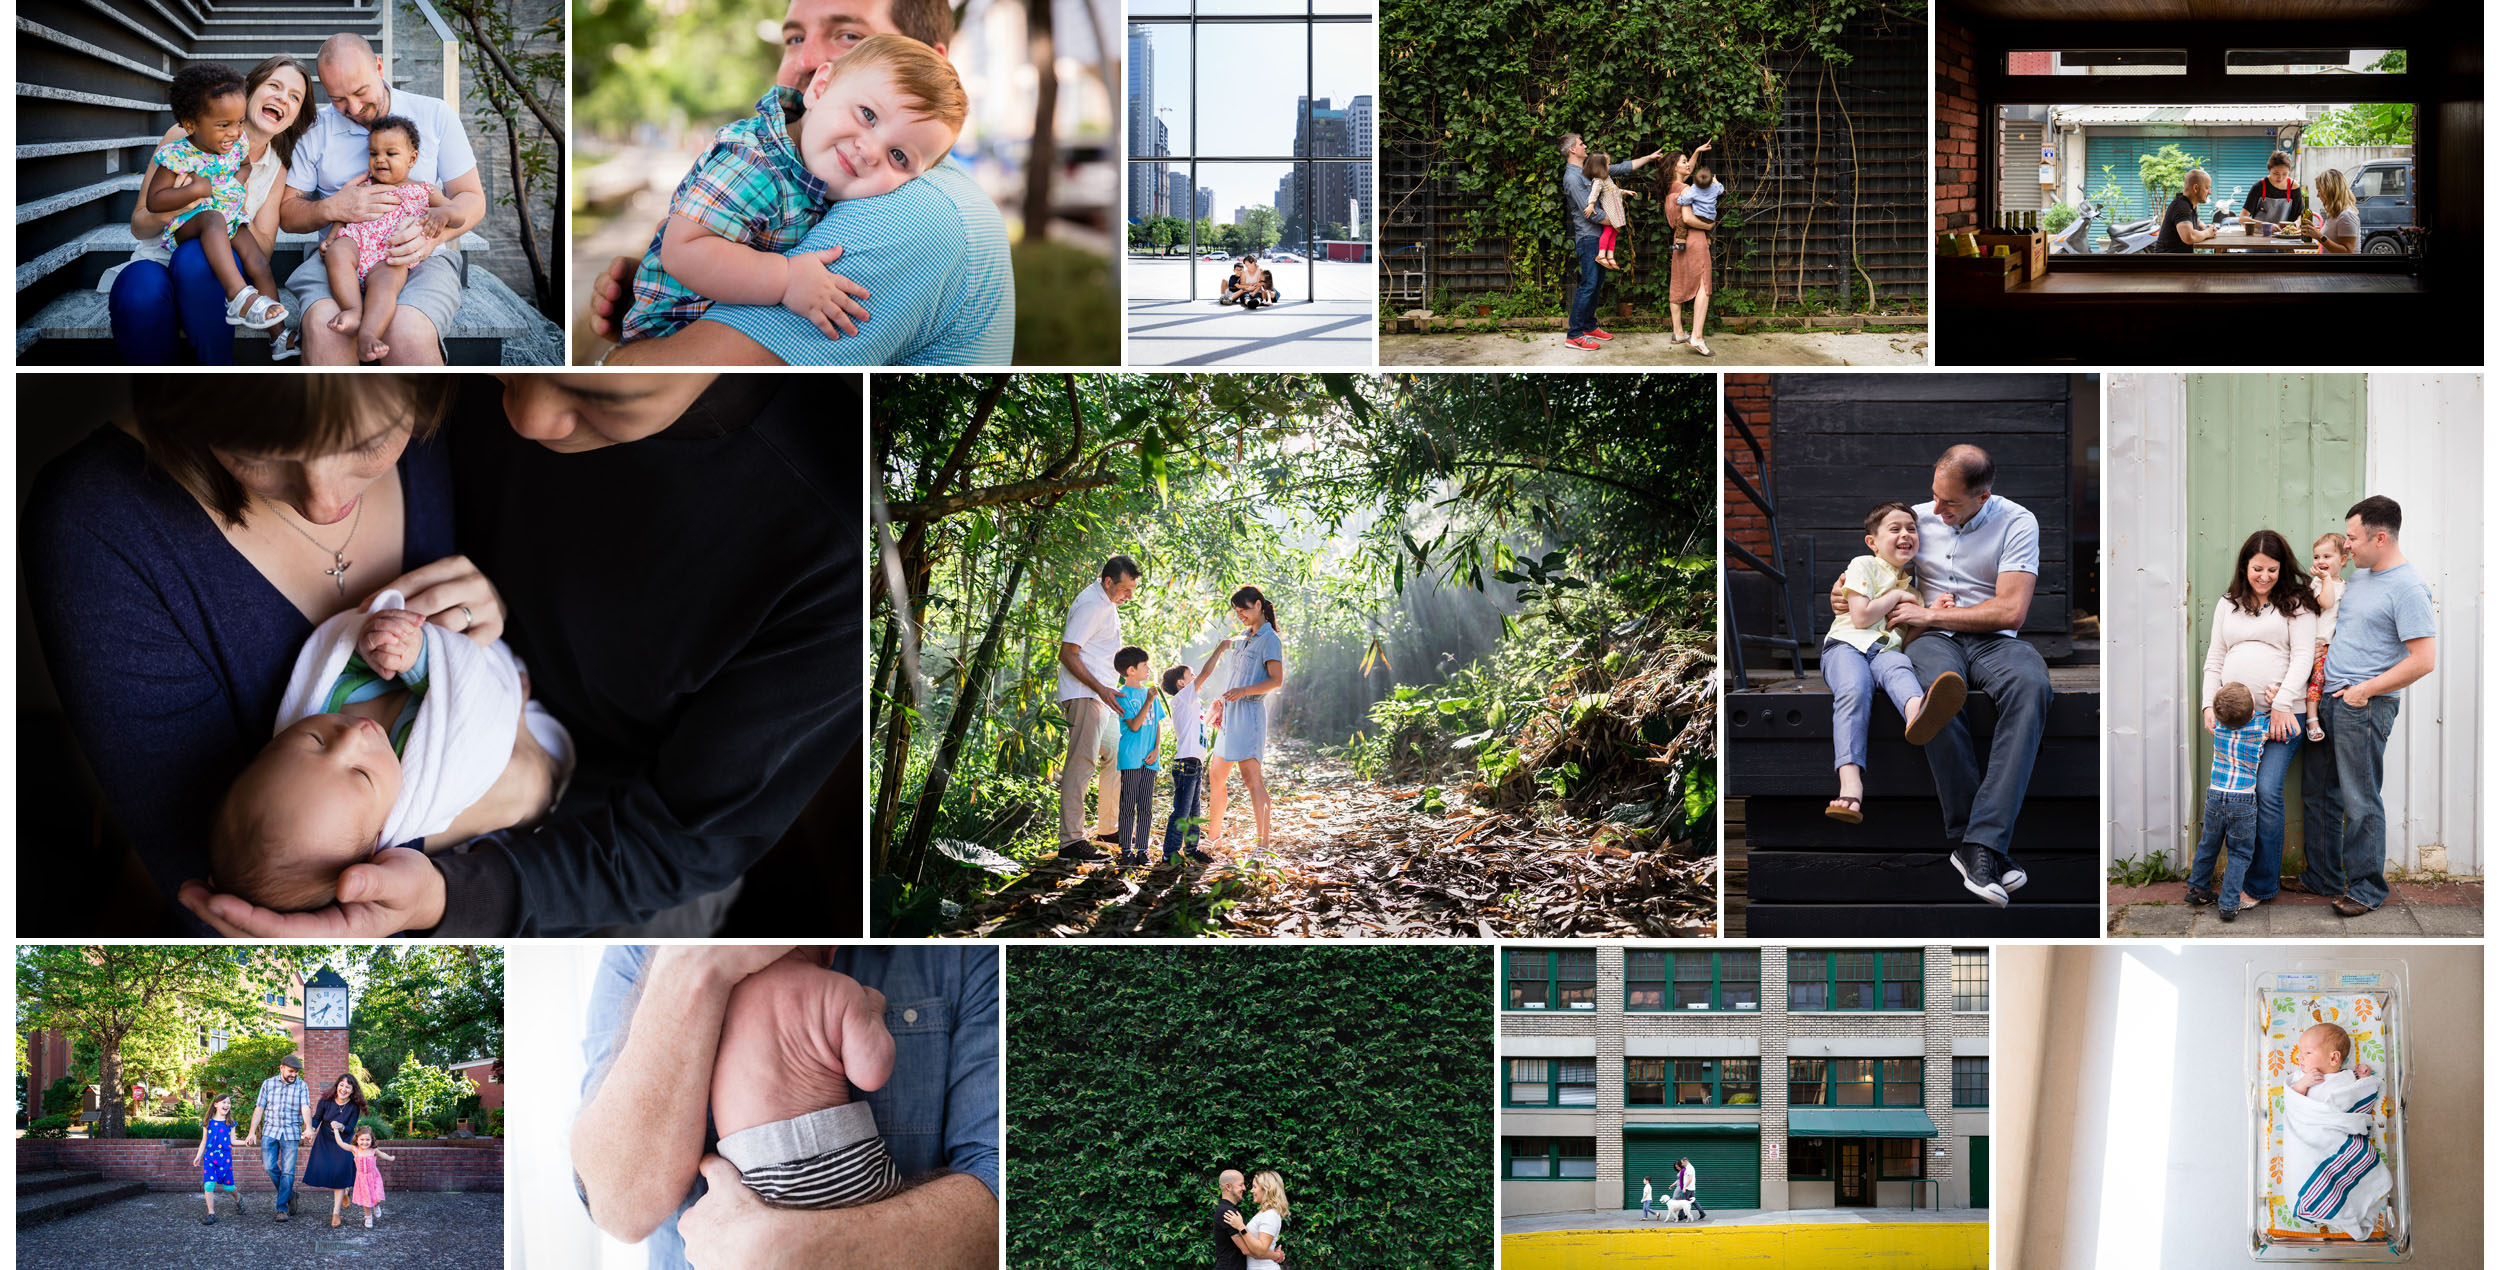 Blue_And_Green_Client_Collage_Hunnicutt_Photography_Home_Page.jpg